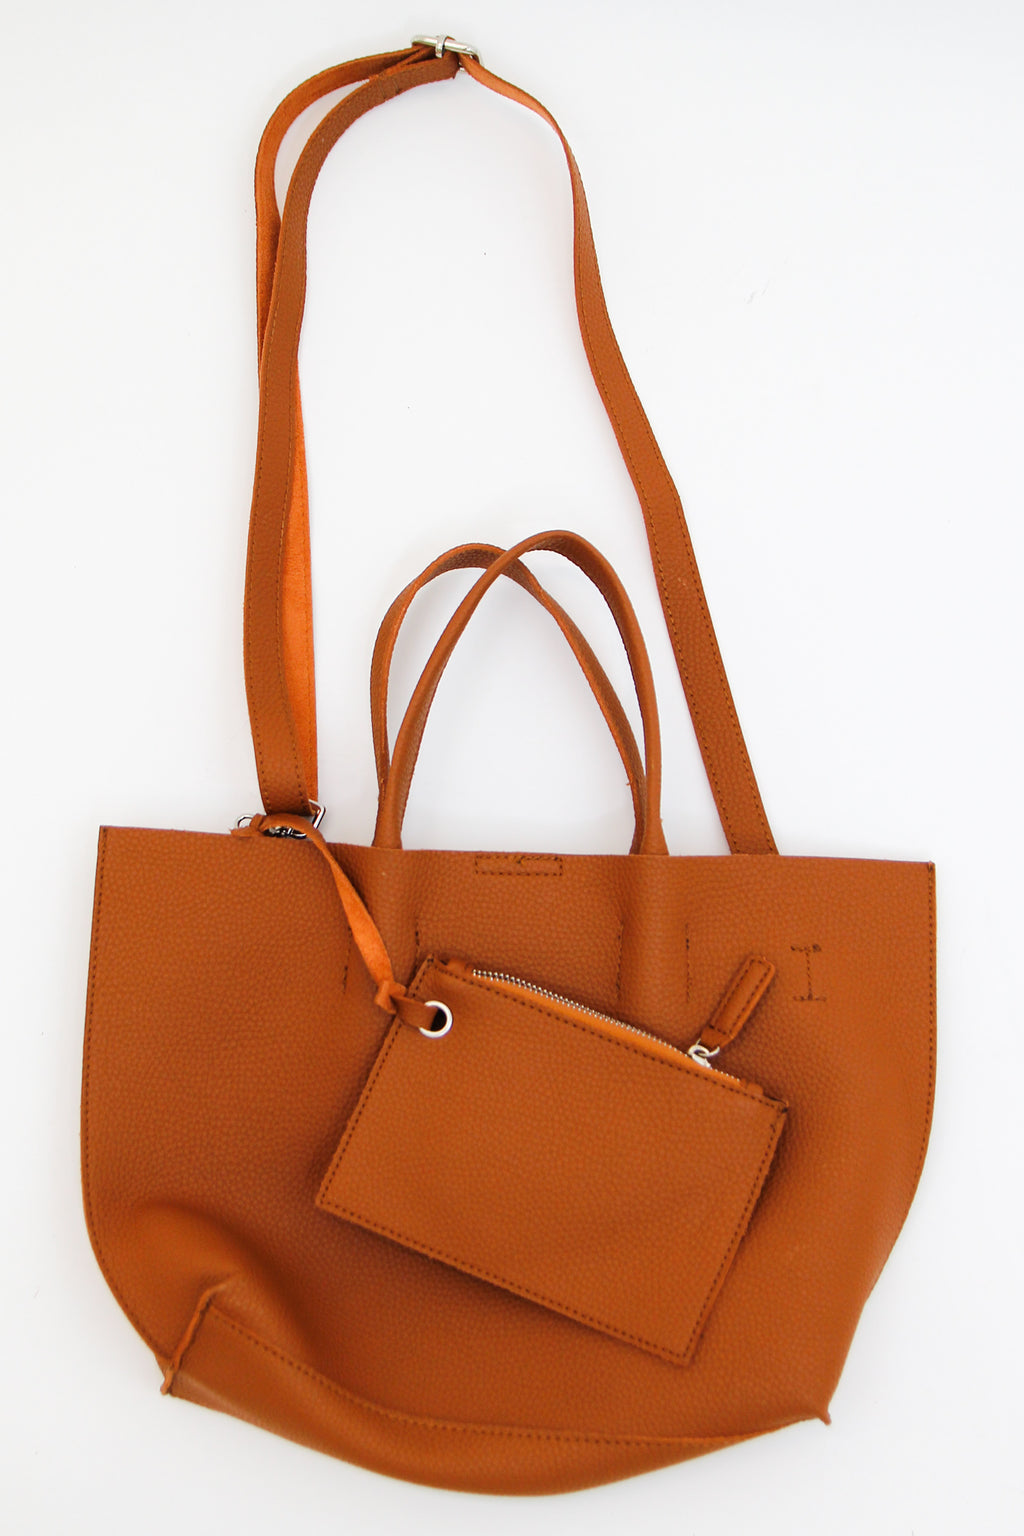 Ready For Anything Tote - Brown